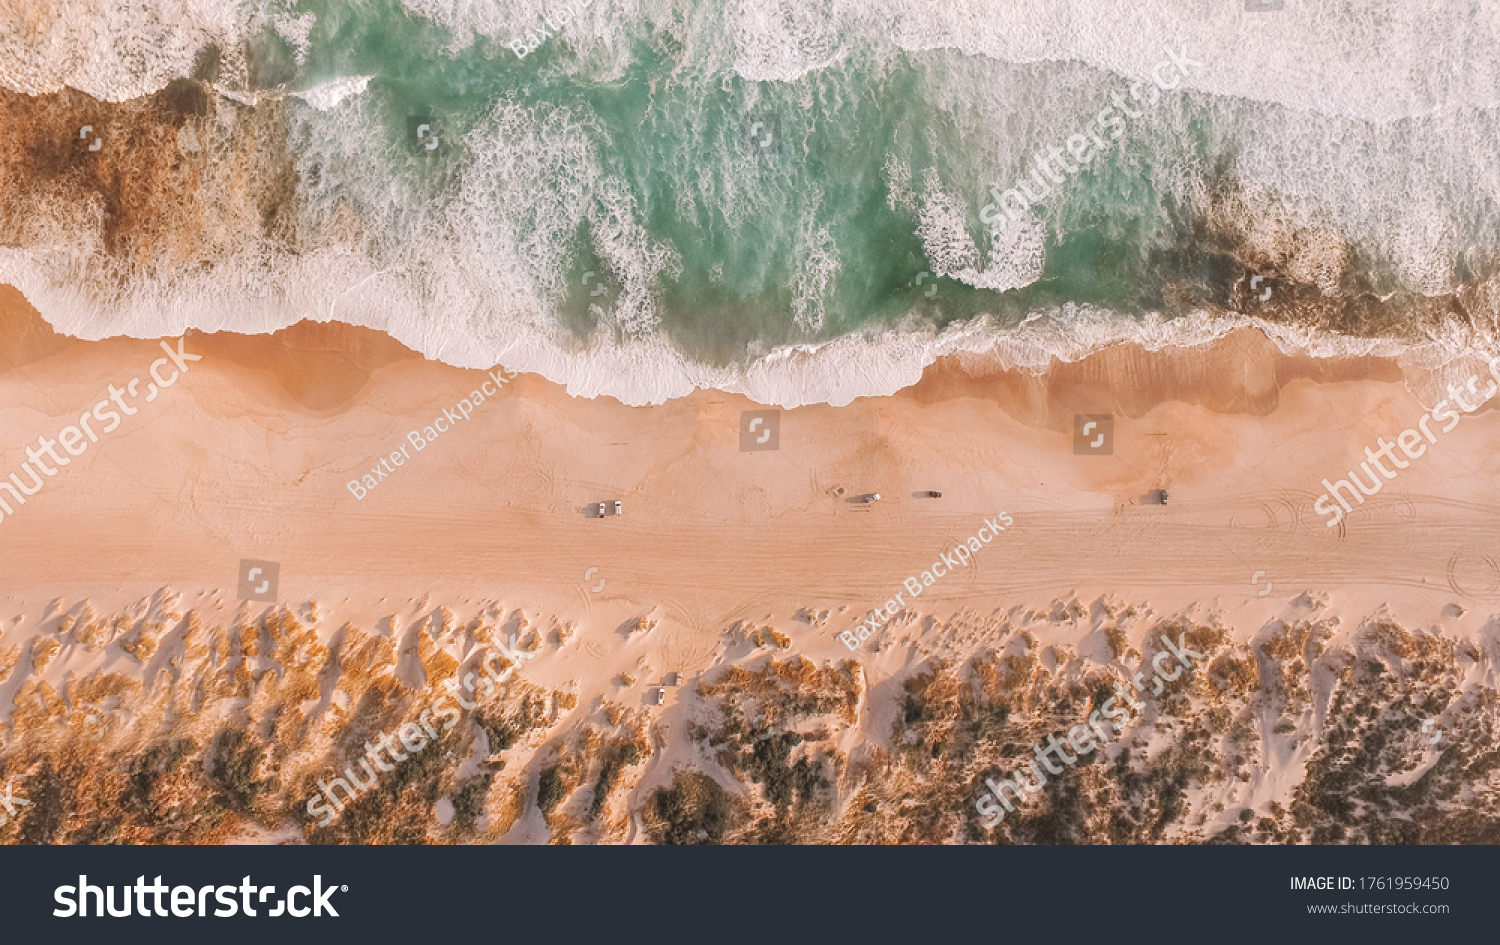 Drone view of Yeagarup Beach and the Warren River, Western Australia, wild southern ocean, river entrance, Australian coastline, rugged coast and crashing waves  #1761959450